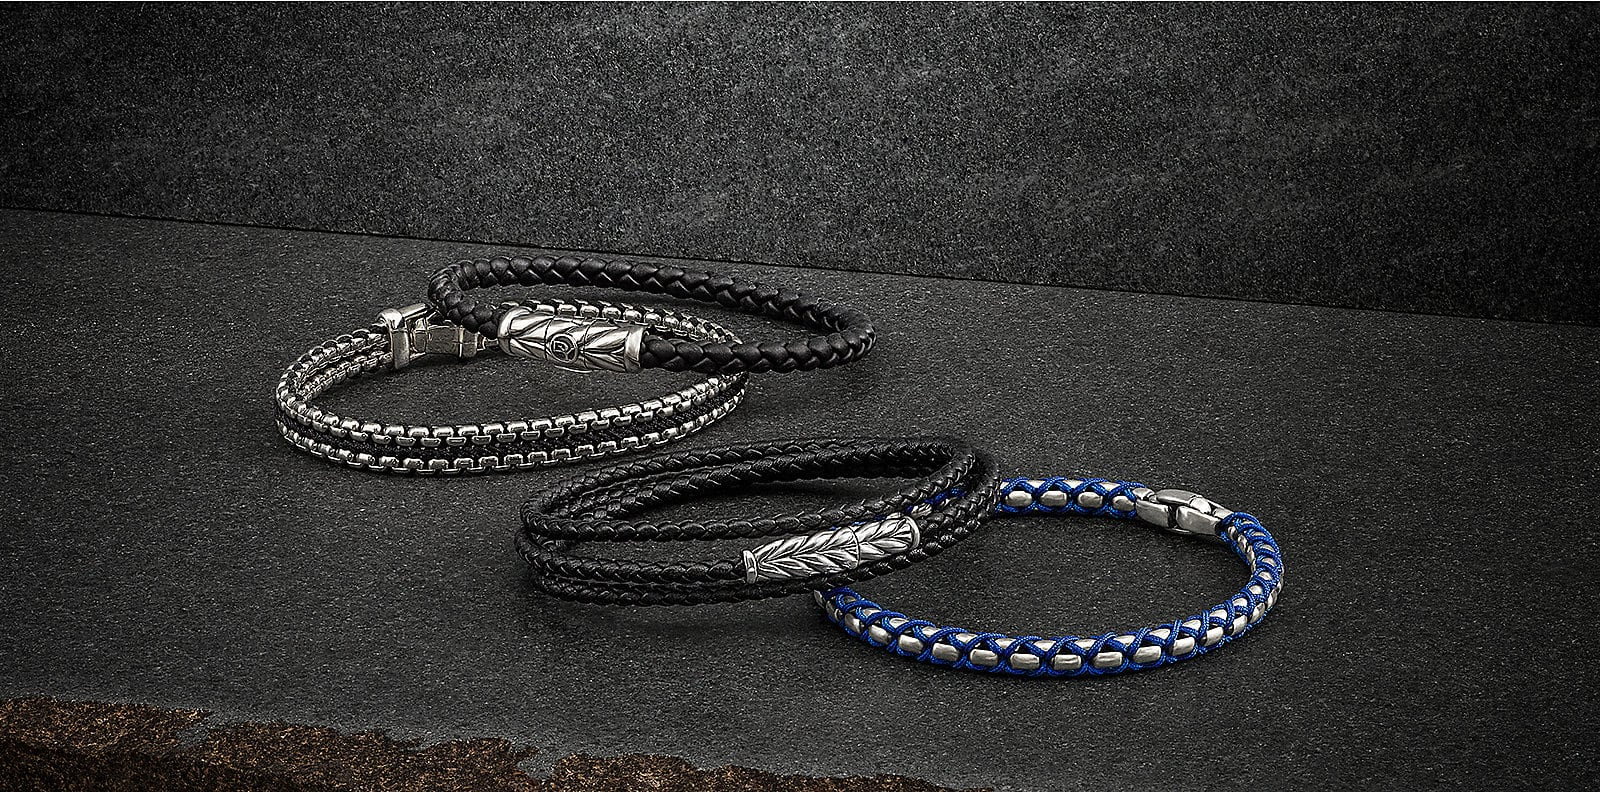 Chevron, Chain and Cable bracelets in leather, sterling silver, nylon and with lapis lazuli.